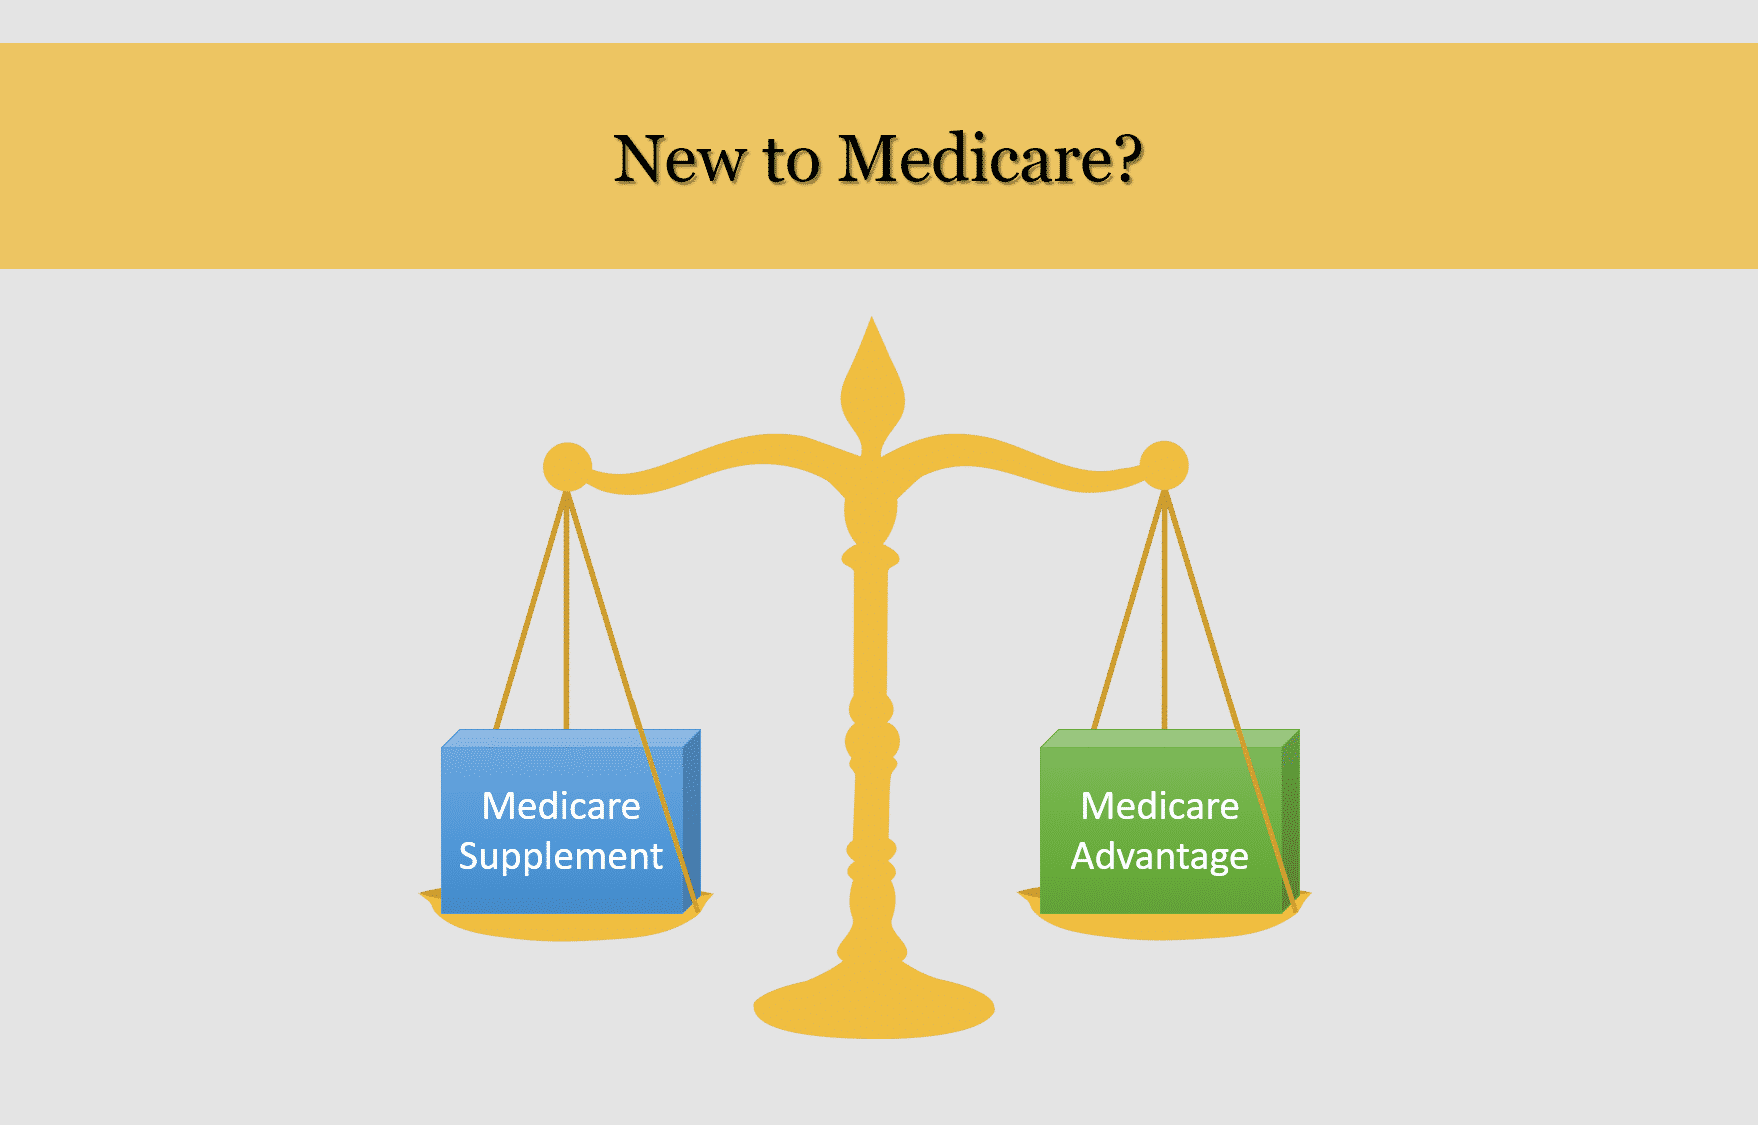 I'm New To Medicare: Should I Sign Up For A Medicare Supplement Or A Medicare Advantage Plan?